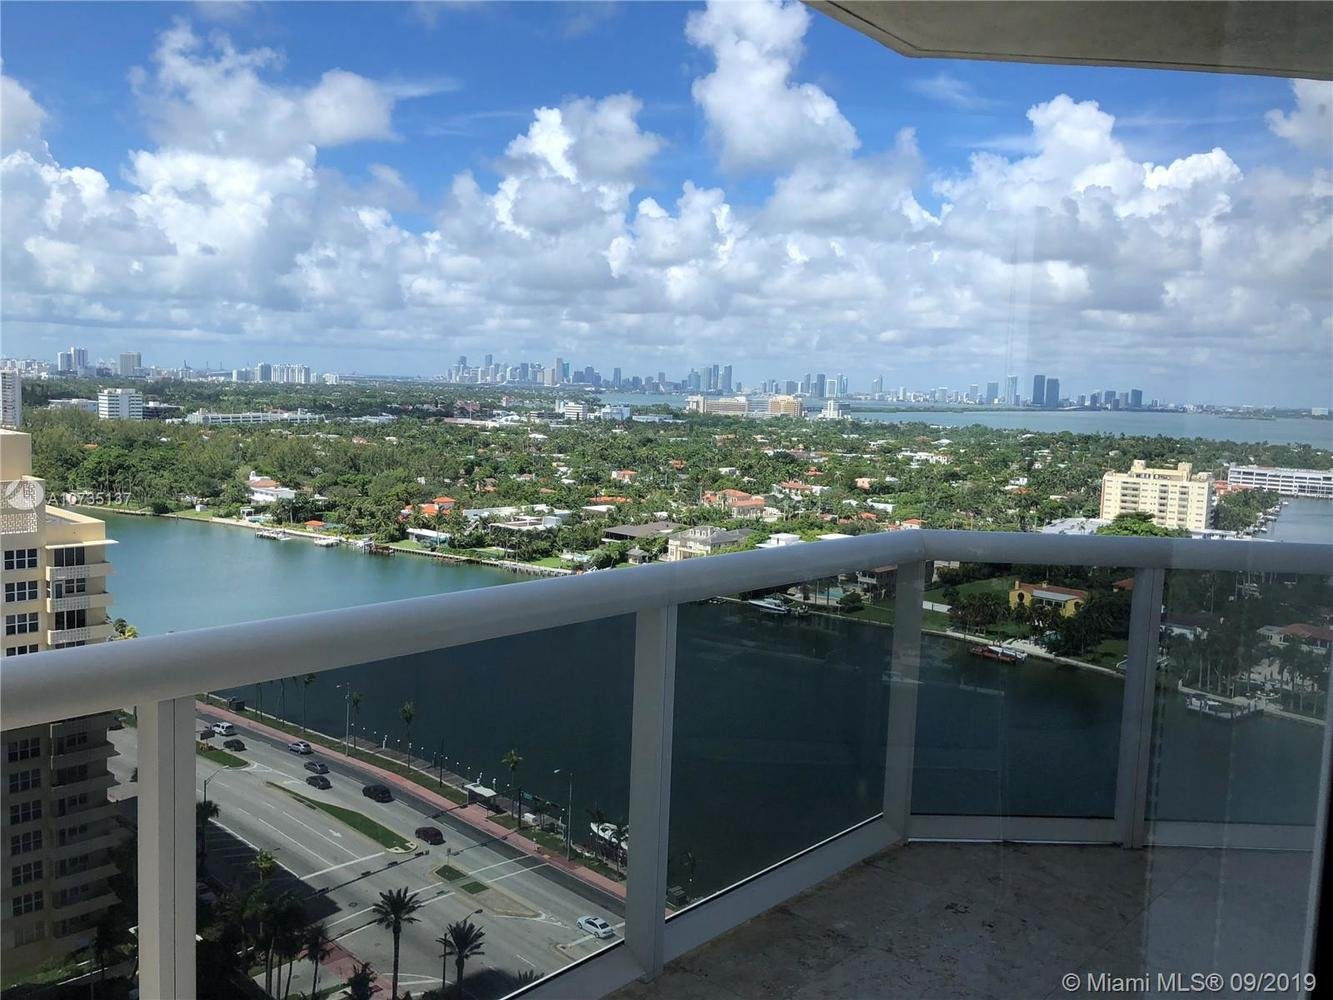 4779 Collins Avenue, Unit 2305 Miami Beach, FL 33140